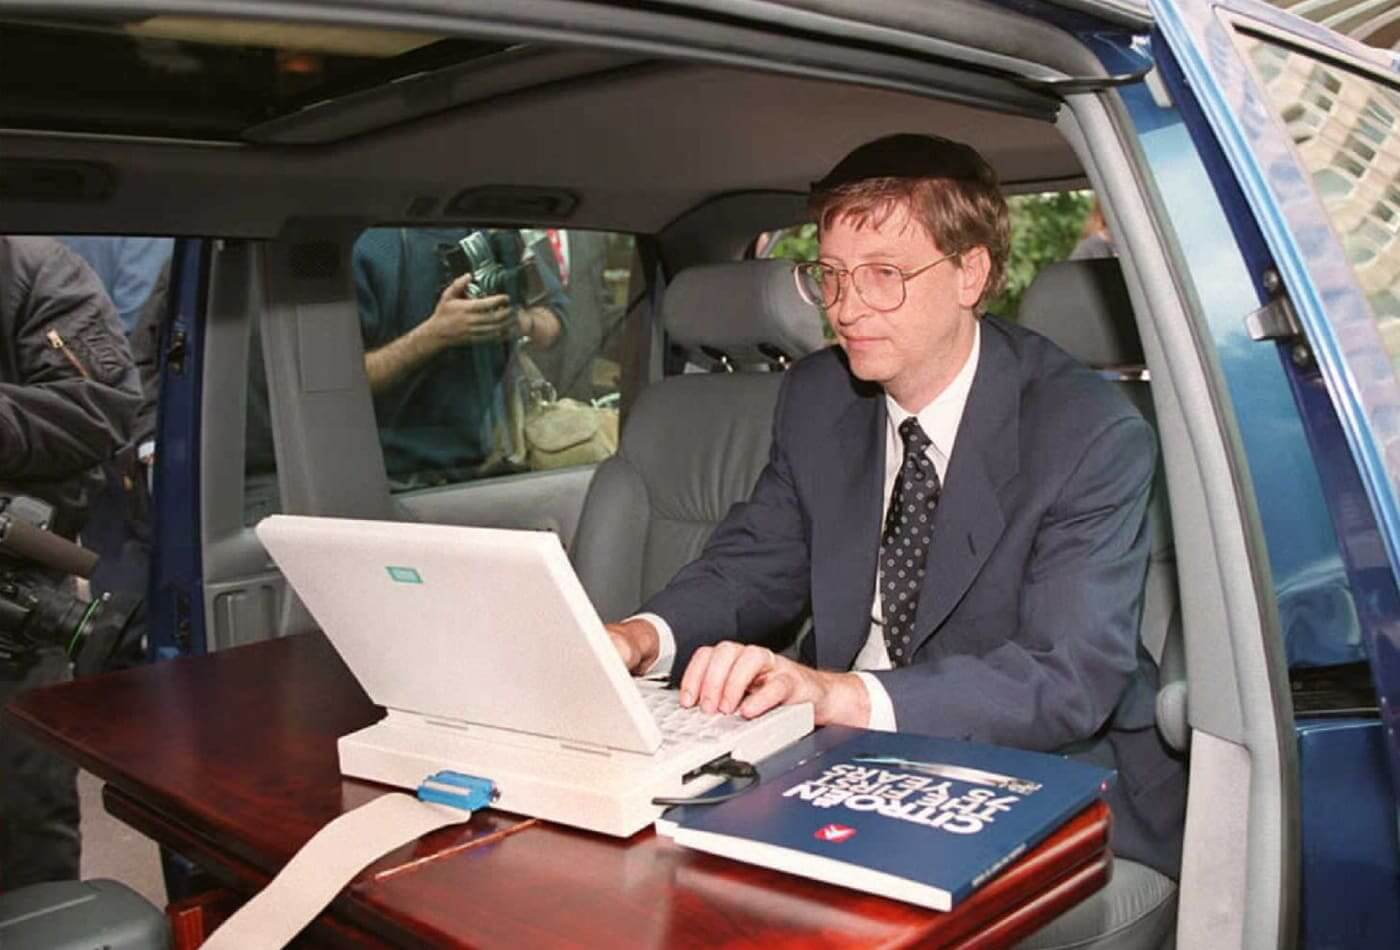 In 1995, Microsoft president Bill Gates demonstrated Microsoft's Windows 95 program from his automobile prior to a press conference in Paris 04 September.